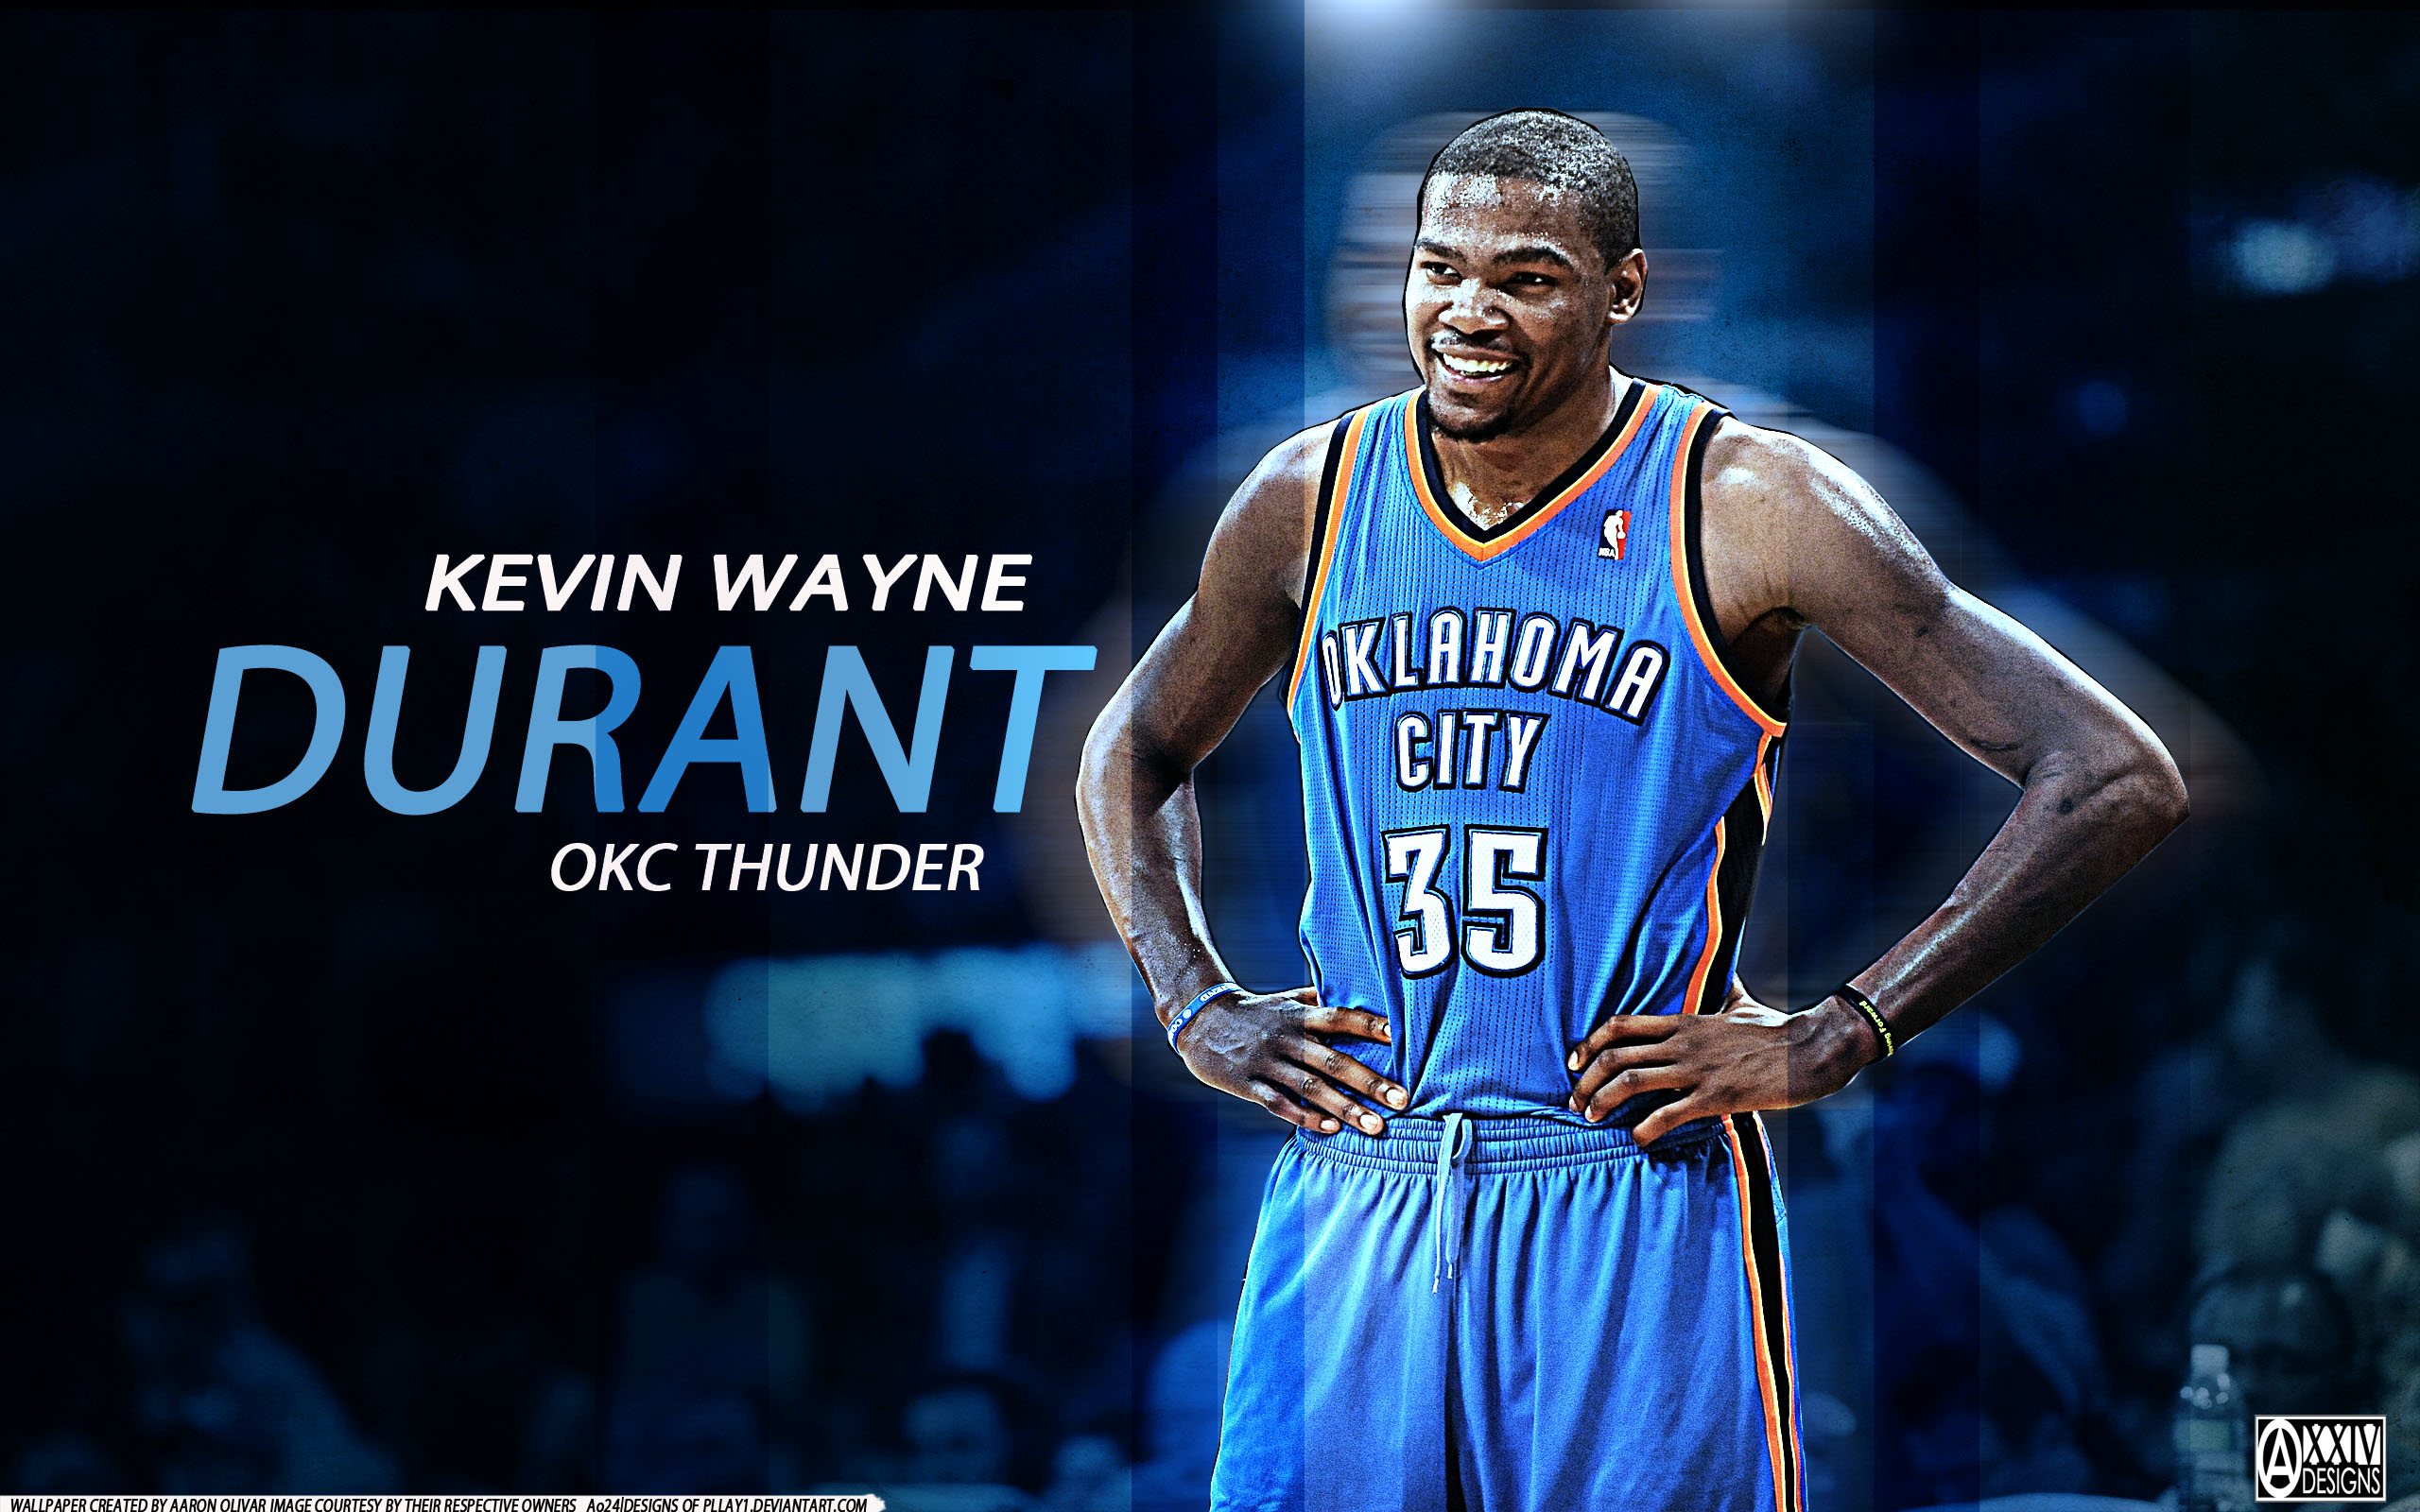 Kevin Durant Wallpaper 2013 Nike Kevin durant a 2560x1600